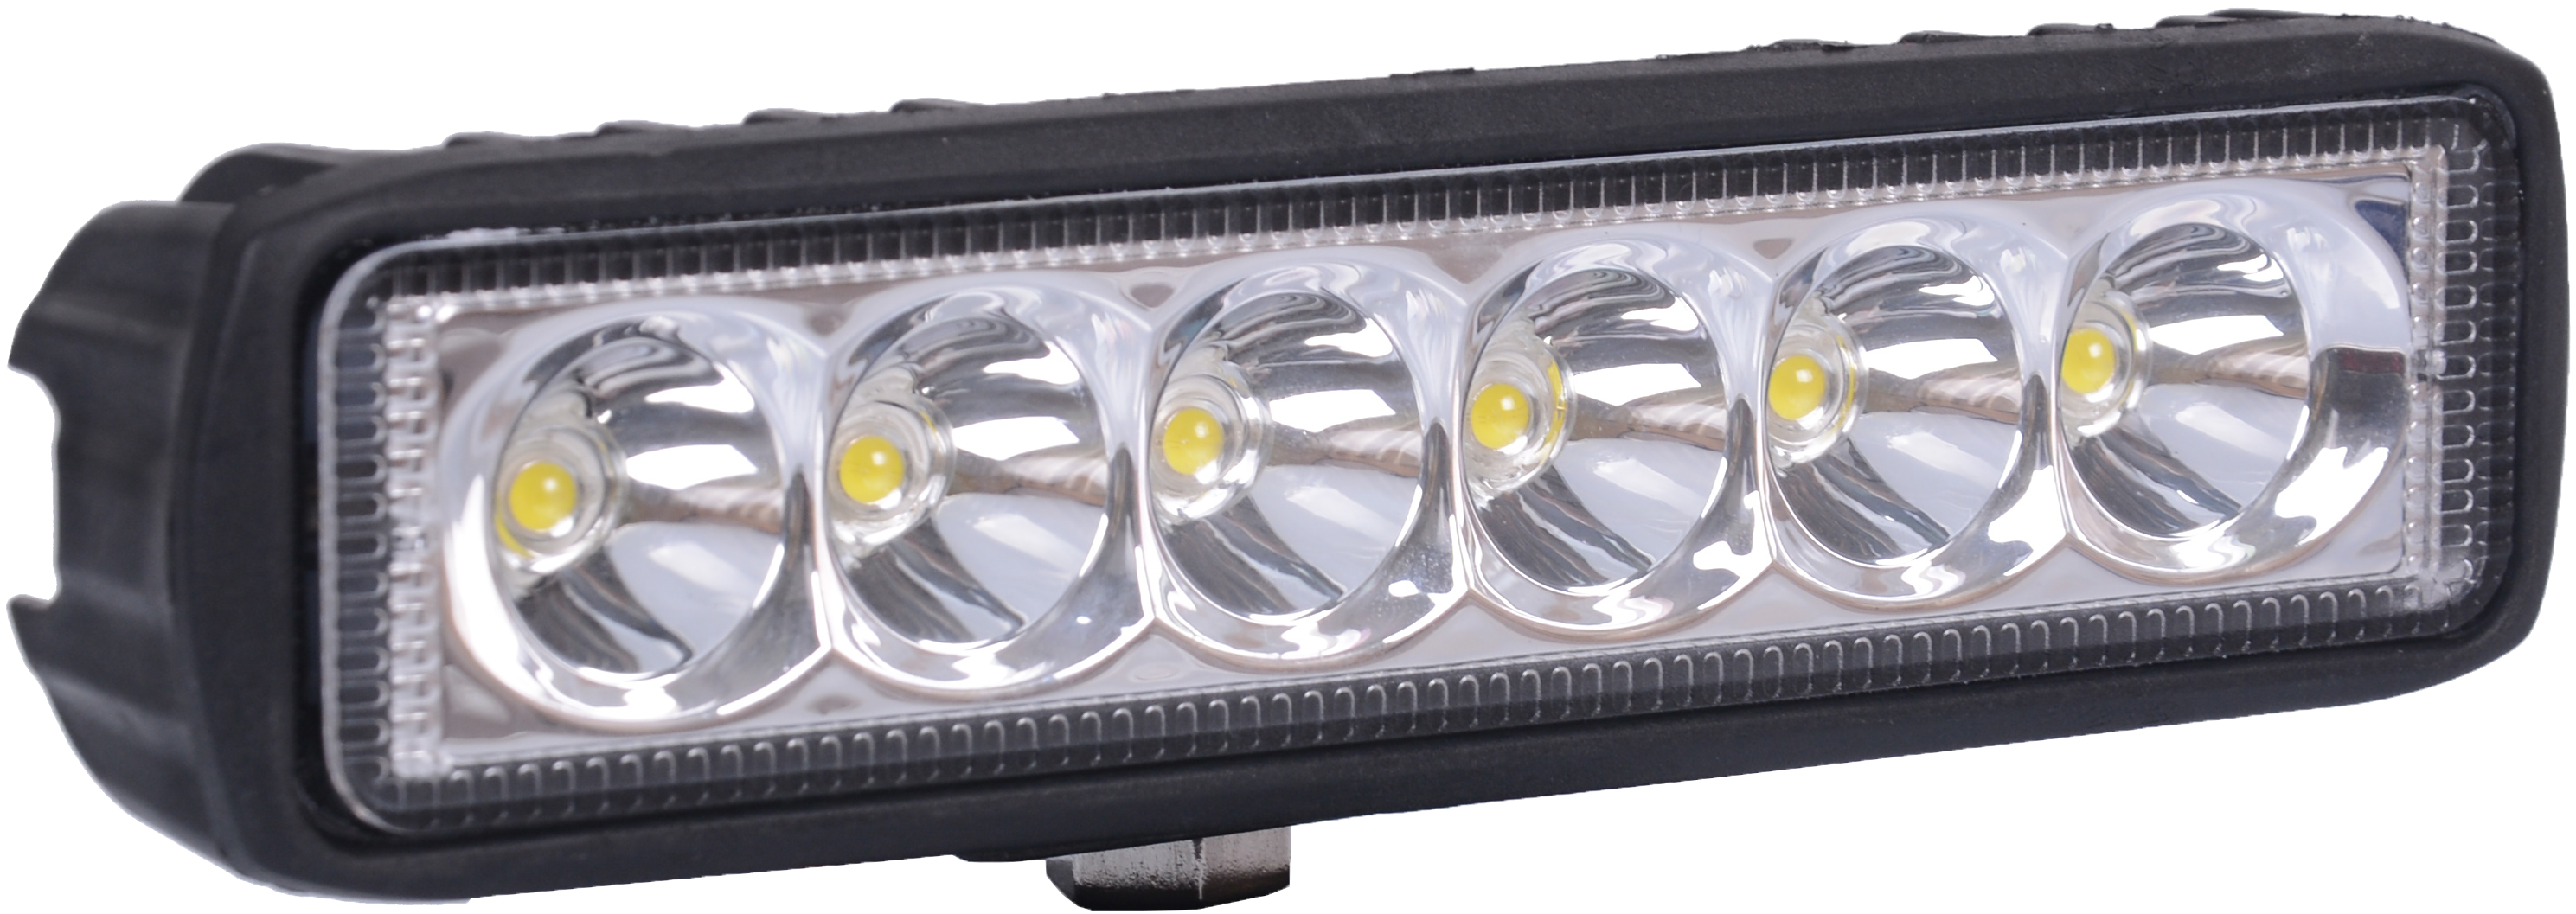 TK1518WSB LED WORK LIGHT